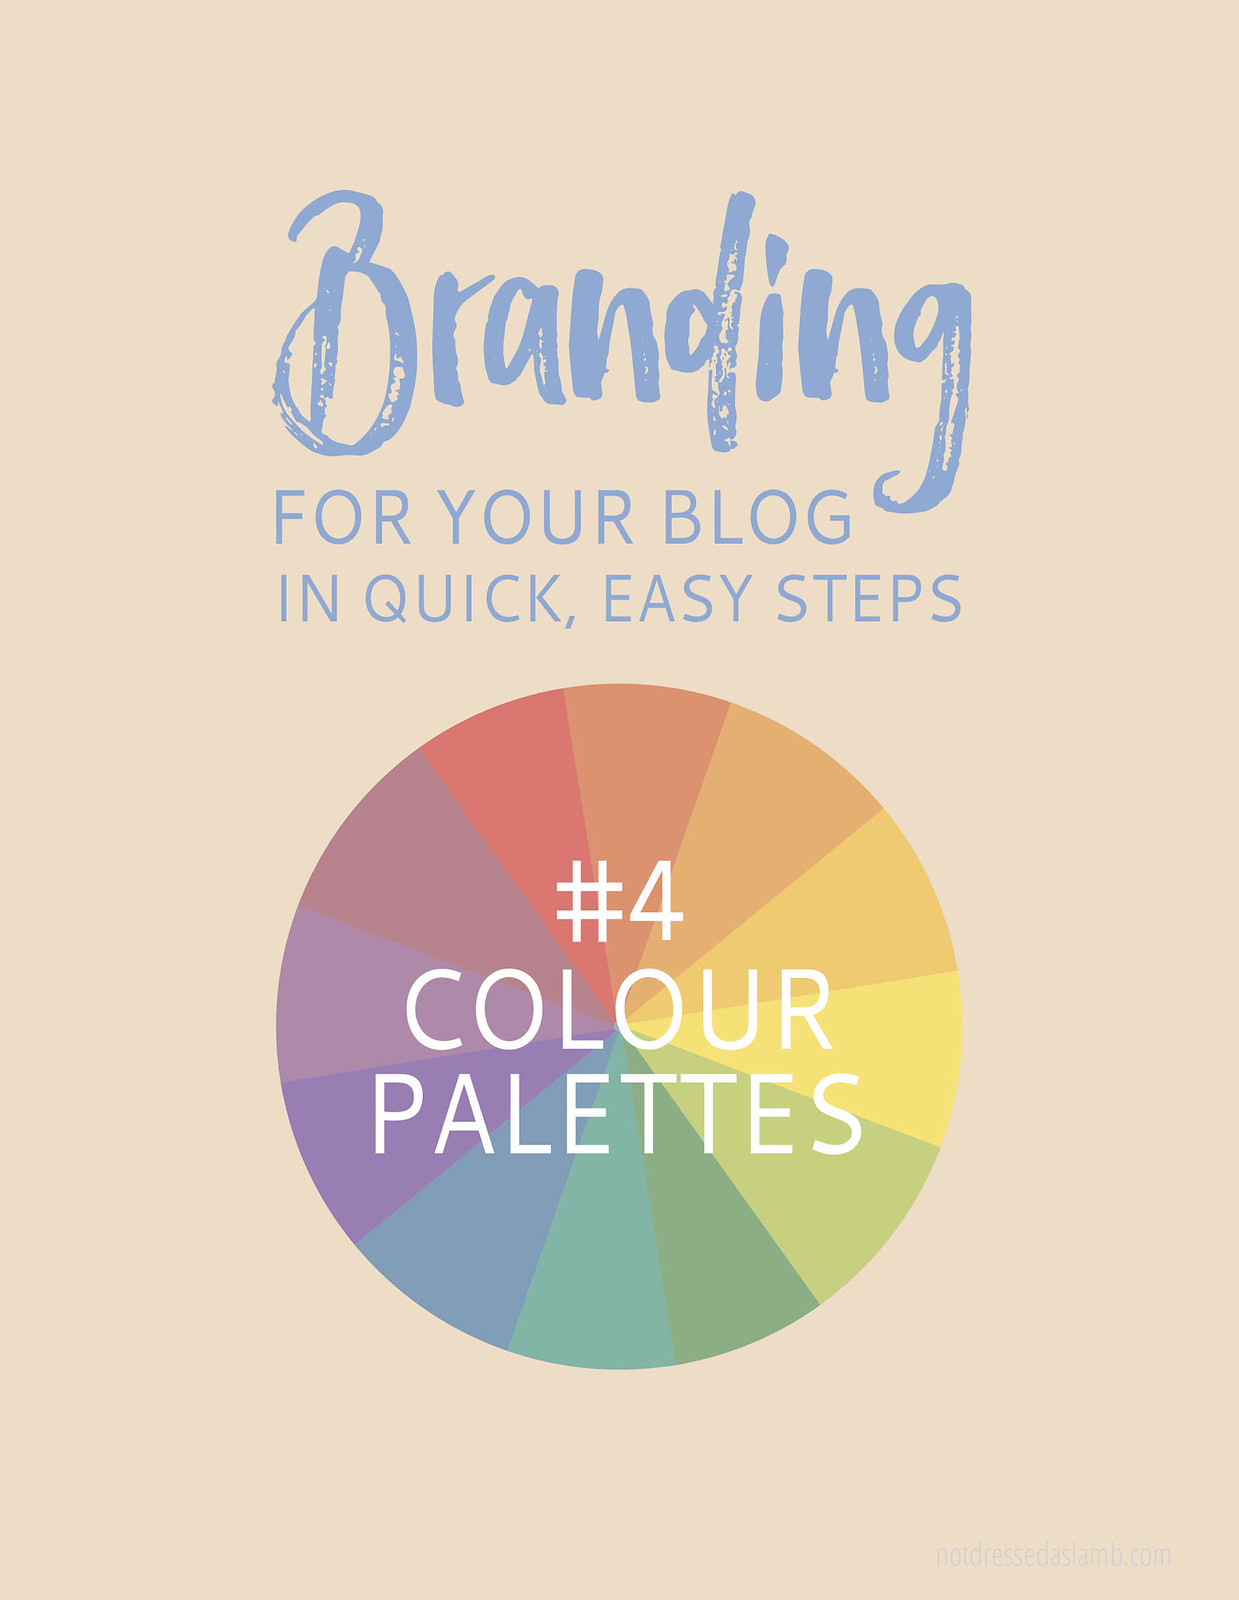 Blogging Tips | Branding For Your Blog in Quick, Easy Steps: 4. Colour Palettes